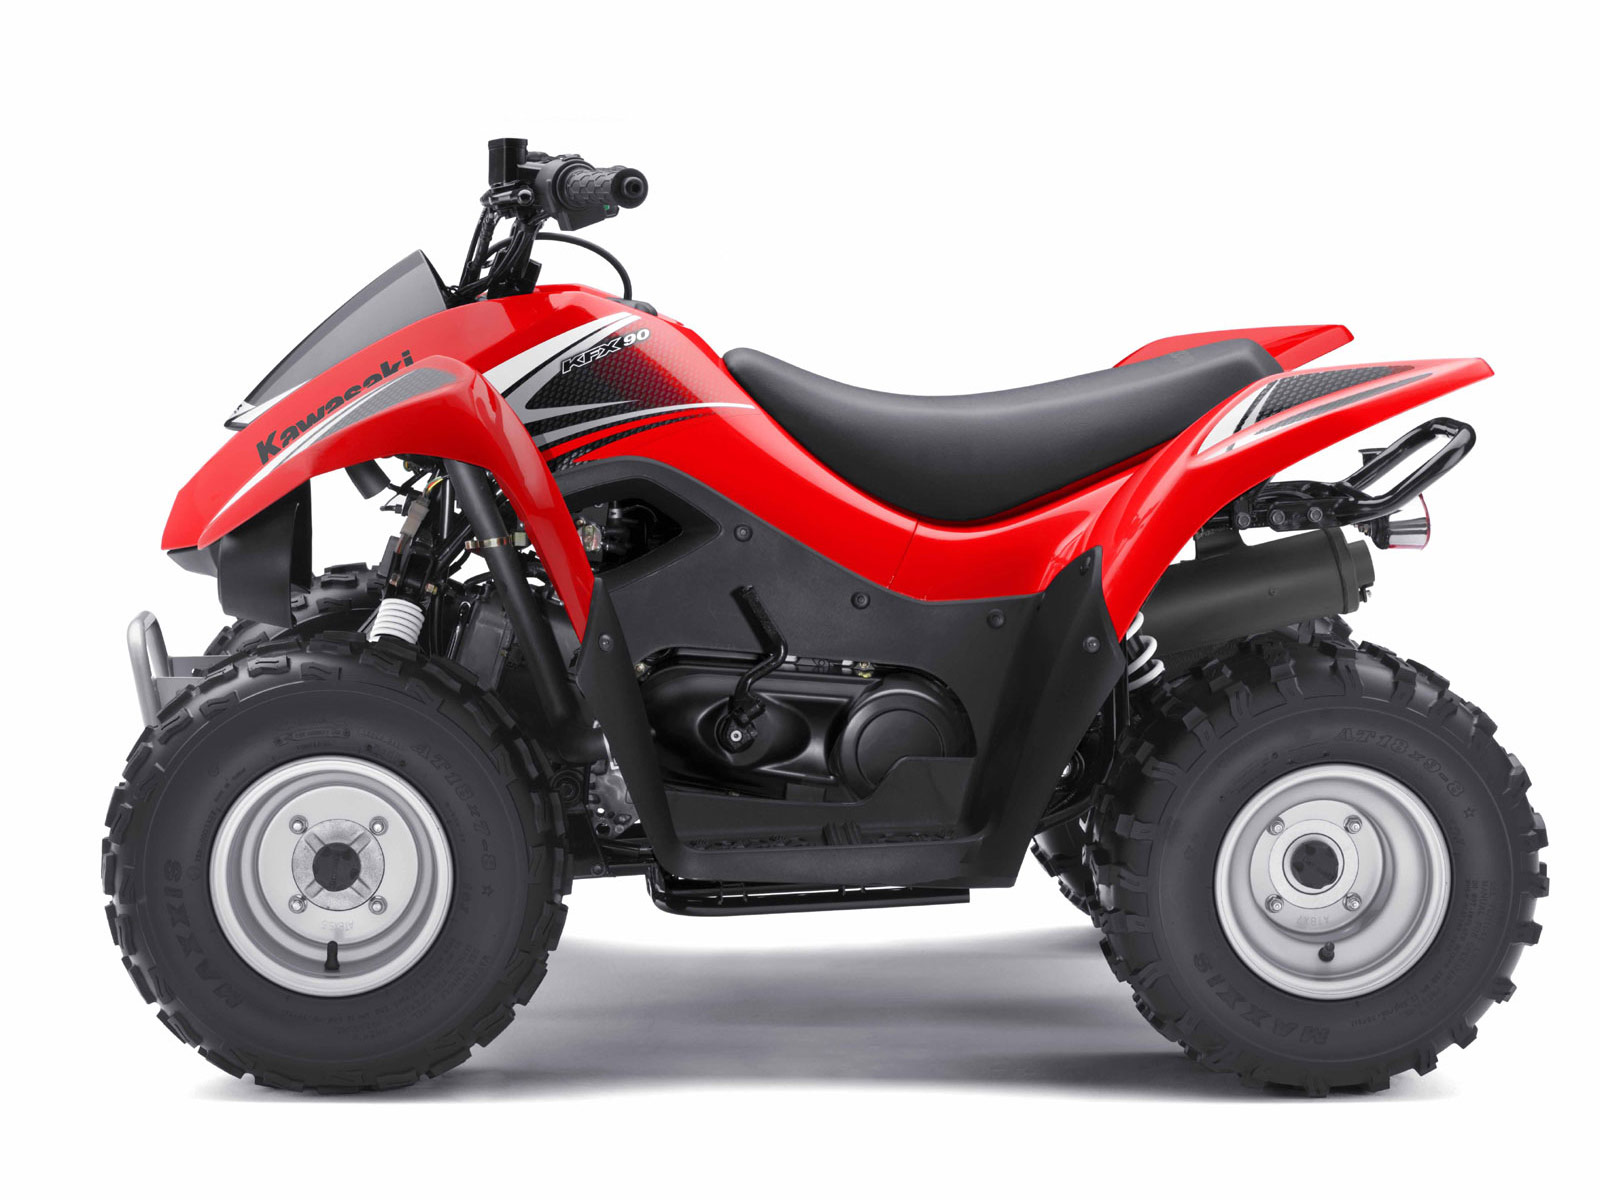 2009 kawasaki kfx 90 atv pictures atv accident lawyers info. Black Bedroom Furniture Sets. Home Design Ideas